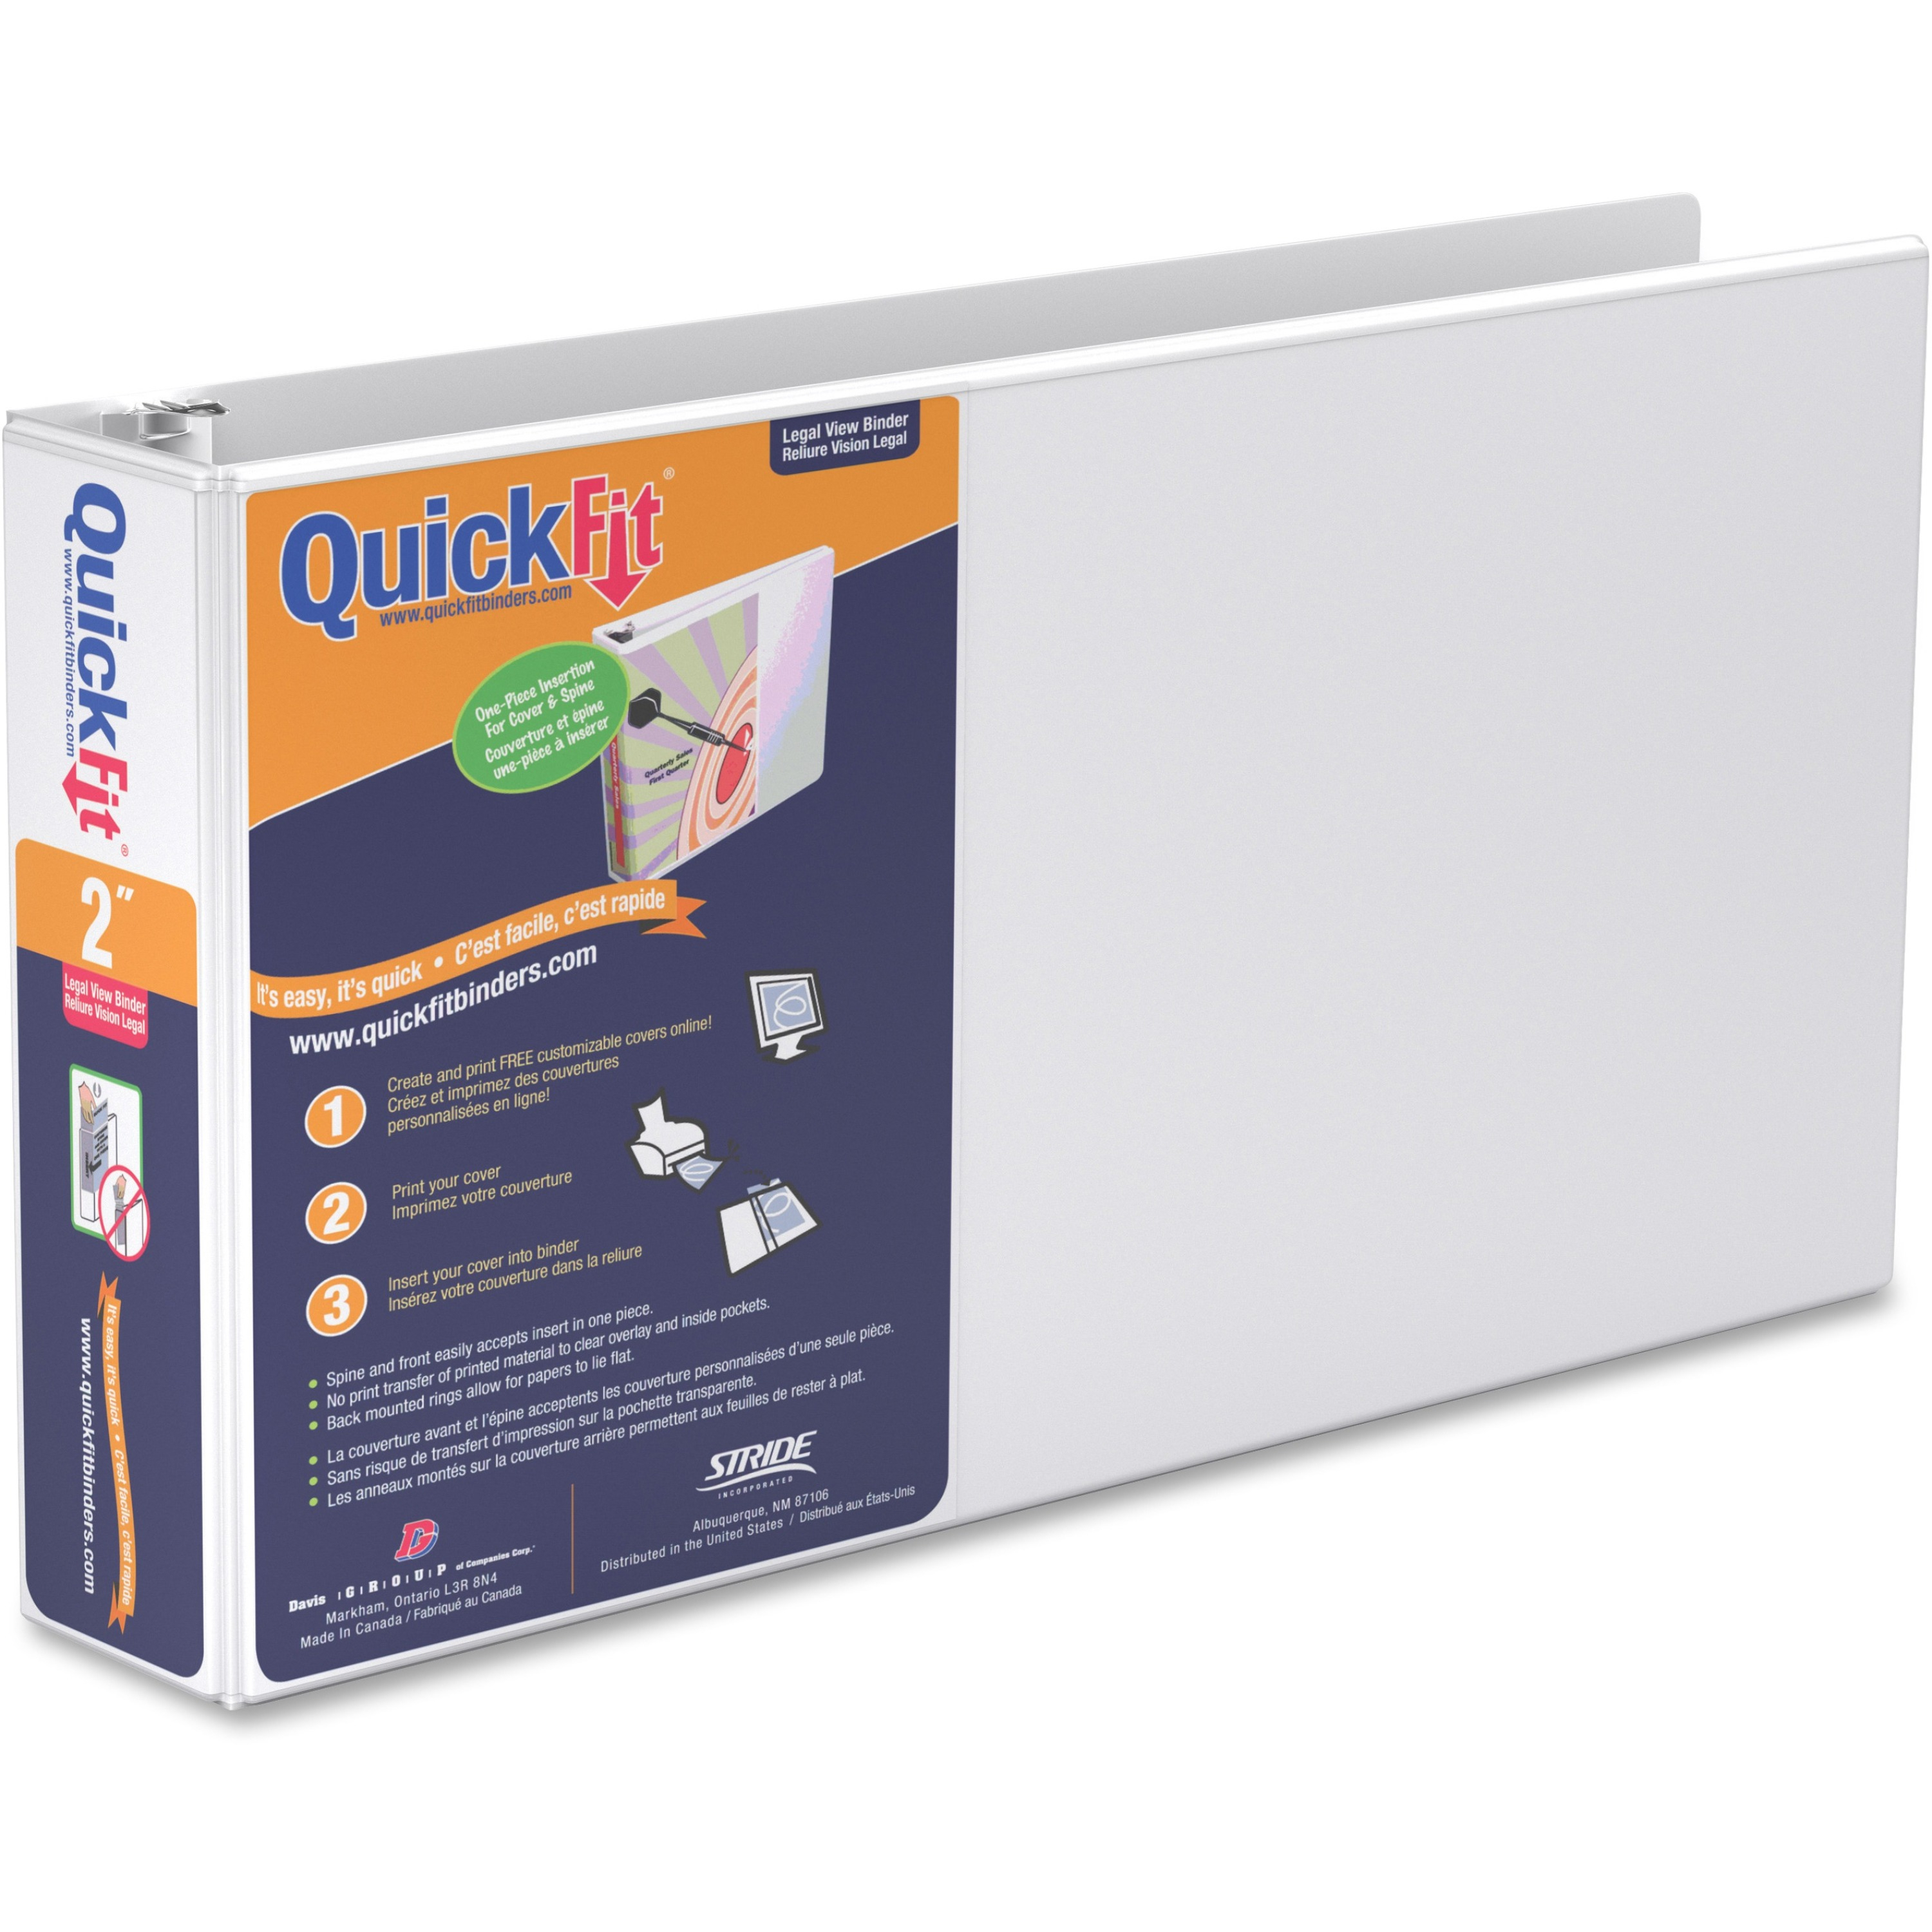 View Spreadsheet Online Within Ocean Stationery And Office Supplies :: Office Supplies :: Binders